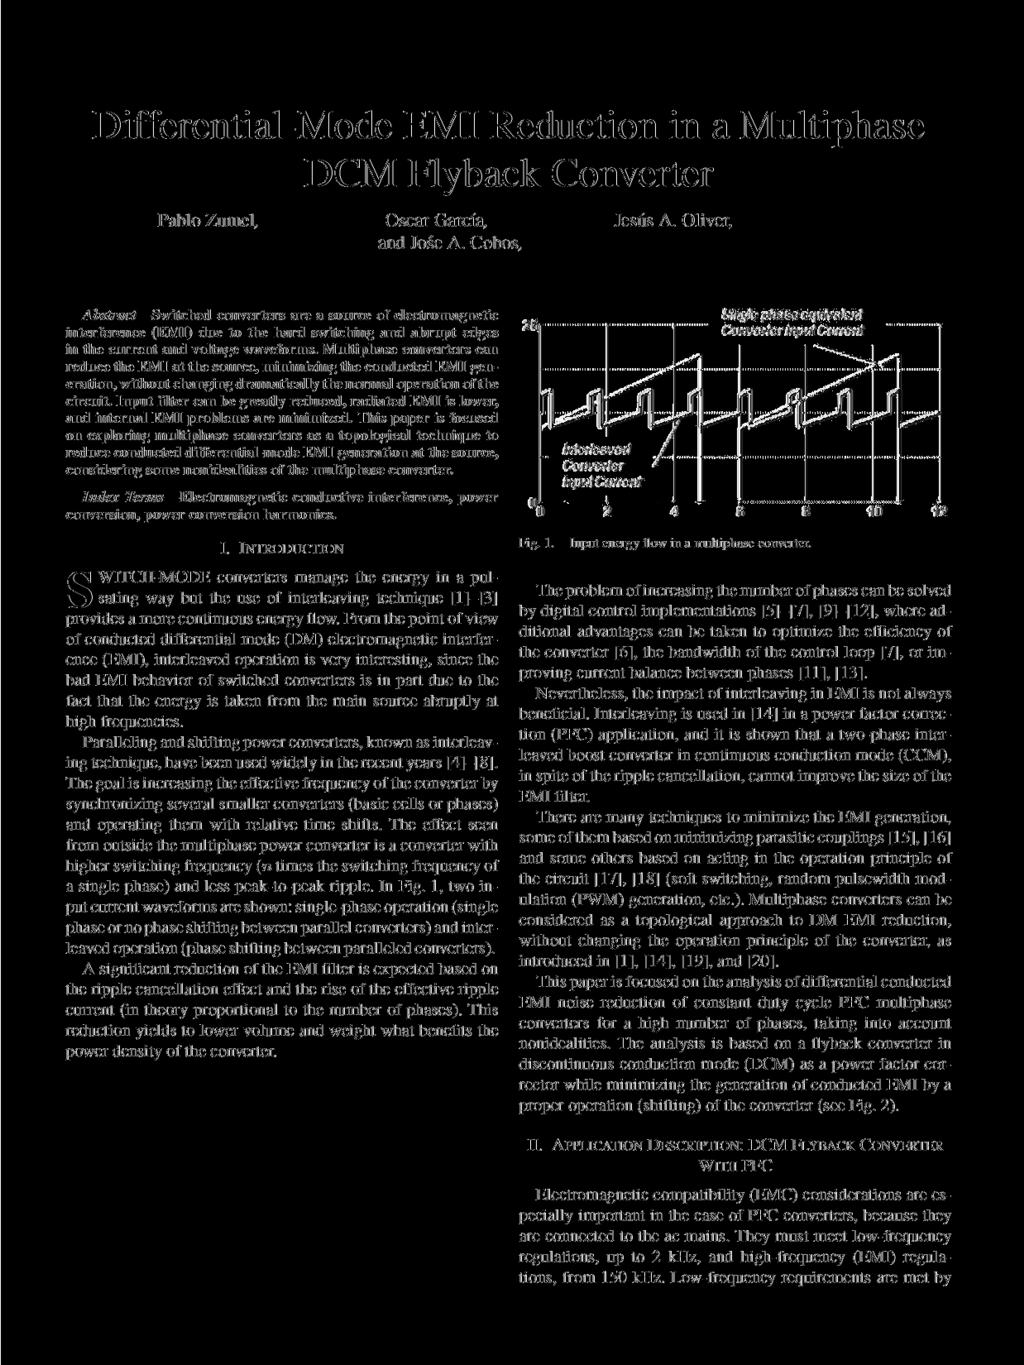 Differential Mode Emi Reduction In A Multiphase Dcm Flyback Converter Interleaved Operation For High Frequency Ripple Pablo Zumel Osear Garca